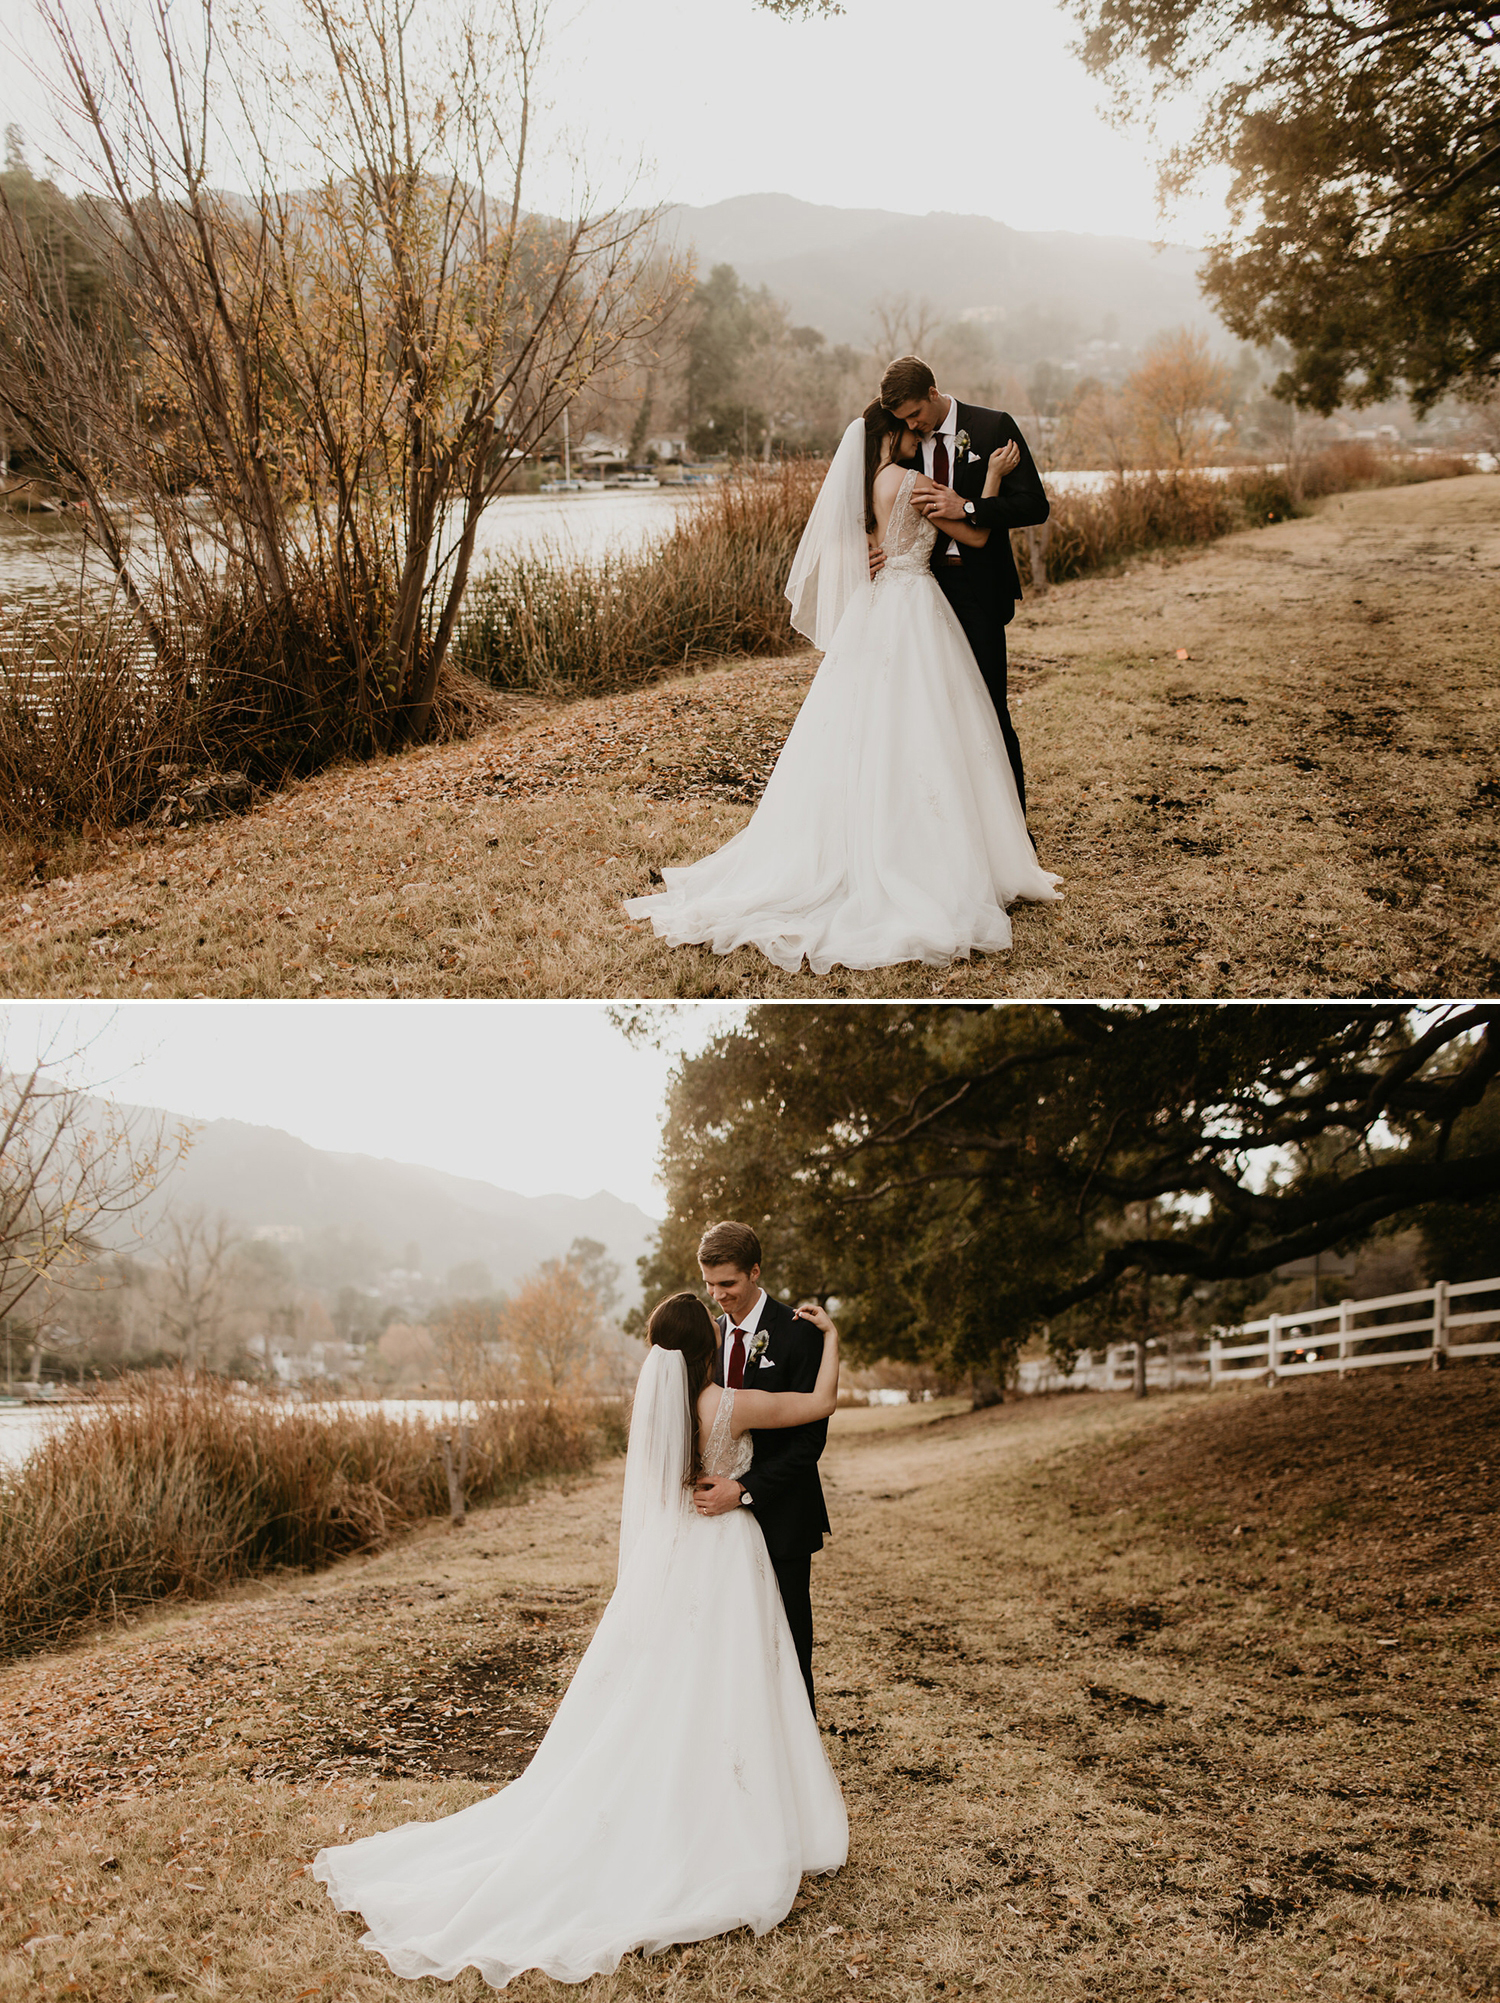 Bree and Logans Lodge at Malibou Lake wedding by Malibu Wedding Photographer, Kadi Tobin